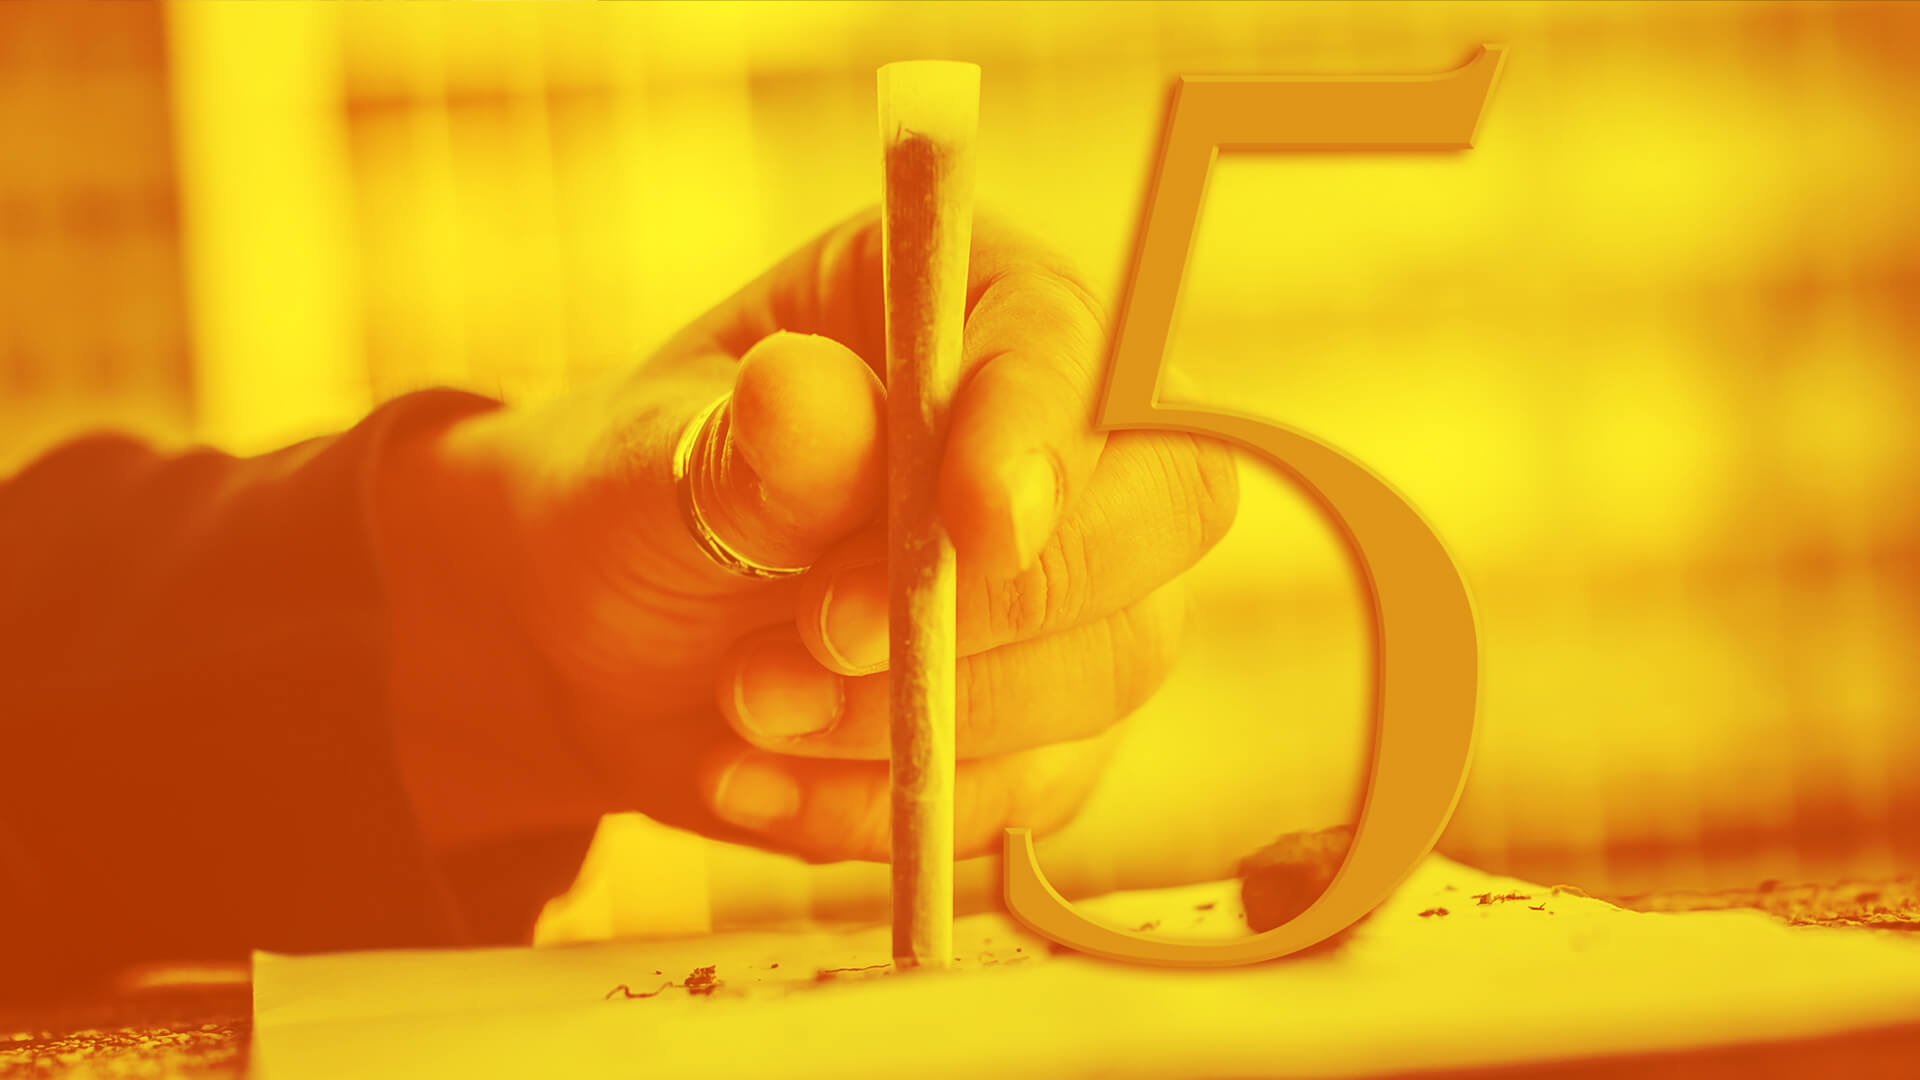 Man holding up joint to create the number 15.